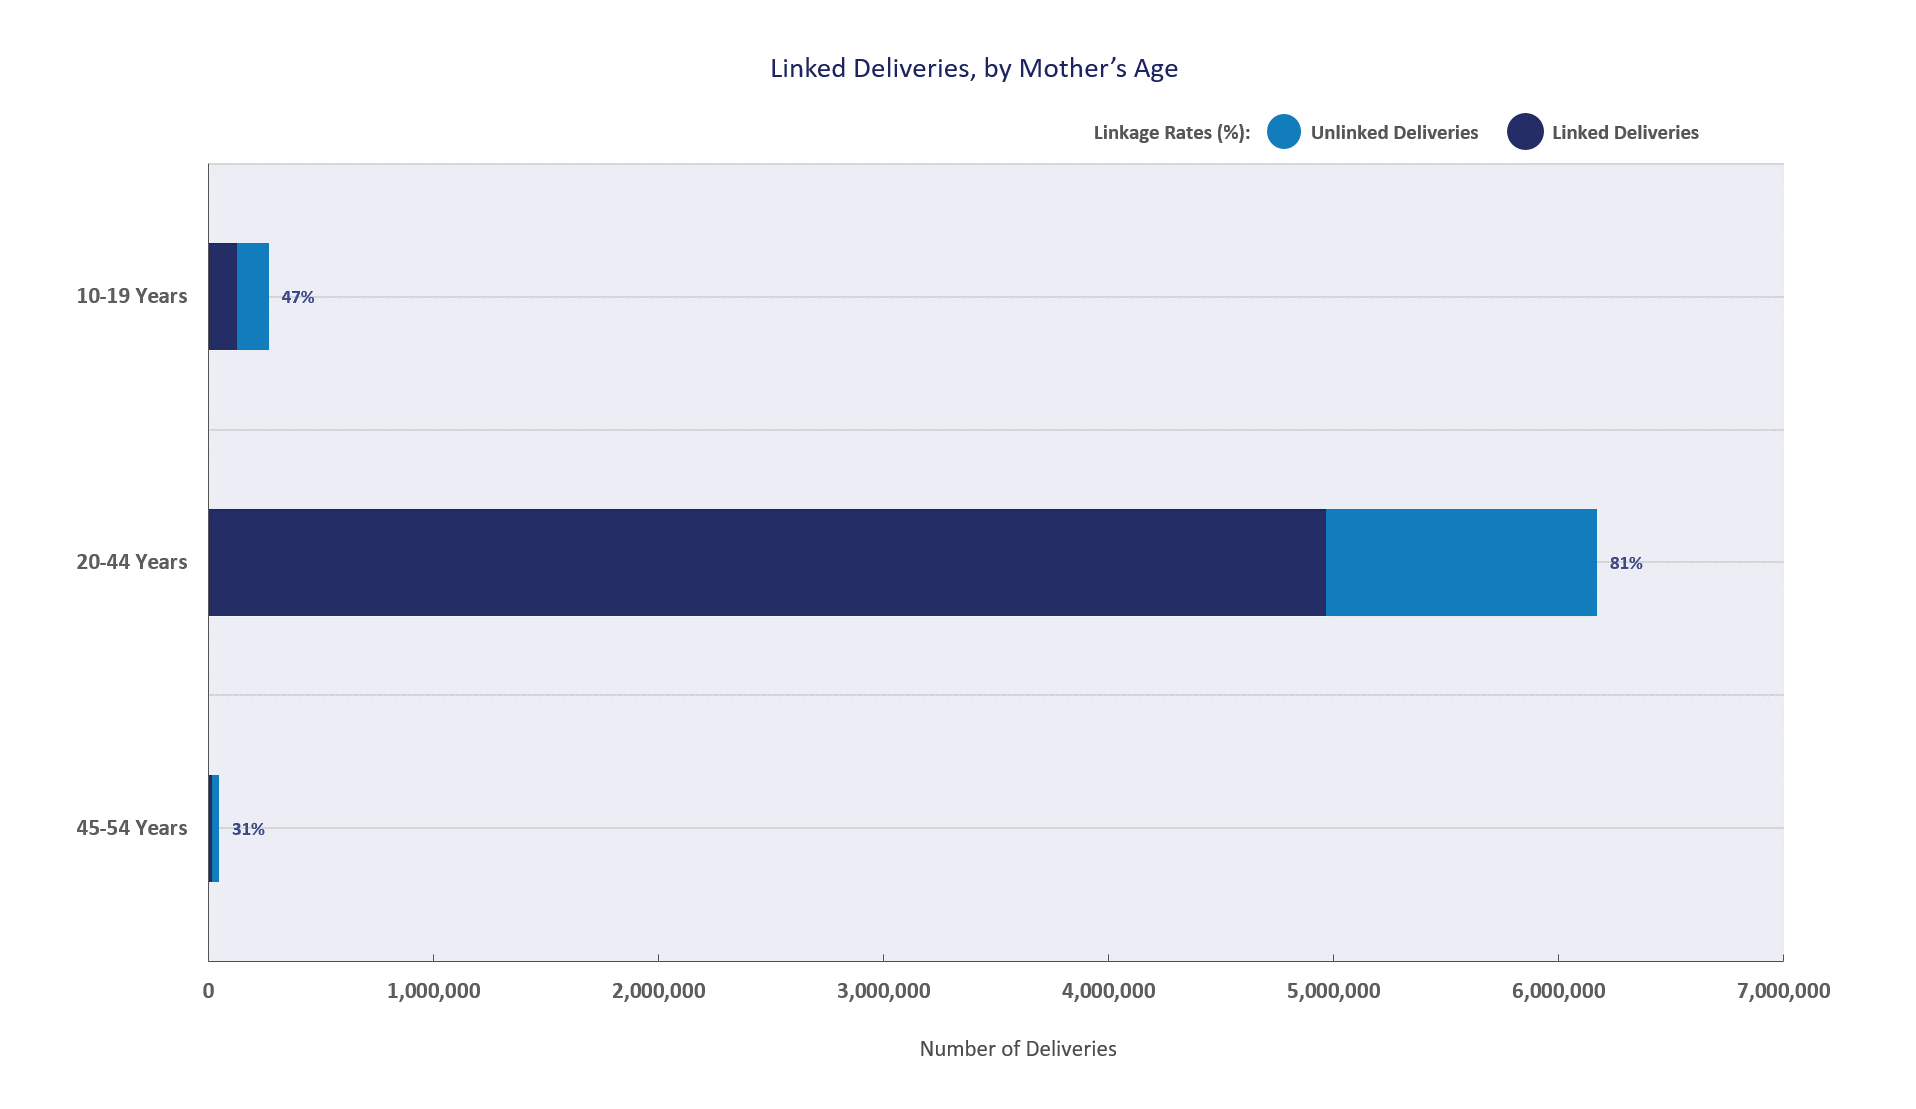 This graph shows the distribution of linked and unlinked deliveries in each mother's age group. The Sentinel Distributed Database contains around 125 thousand linked deliveries among 10-19-year-olds, 5 million among 20-44-year-olds, and 28 thousand among 45-54-year-olds. It is more common for mothers in the 45-54 years group to have different healthcare plans than their infants, leading to challenges in linkage. Last updated: 09/18/20